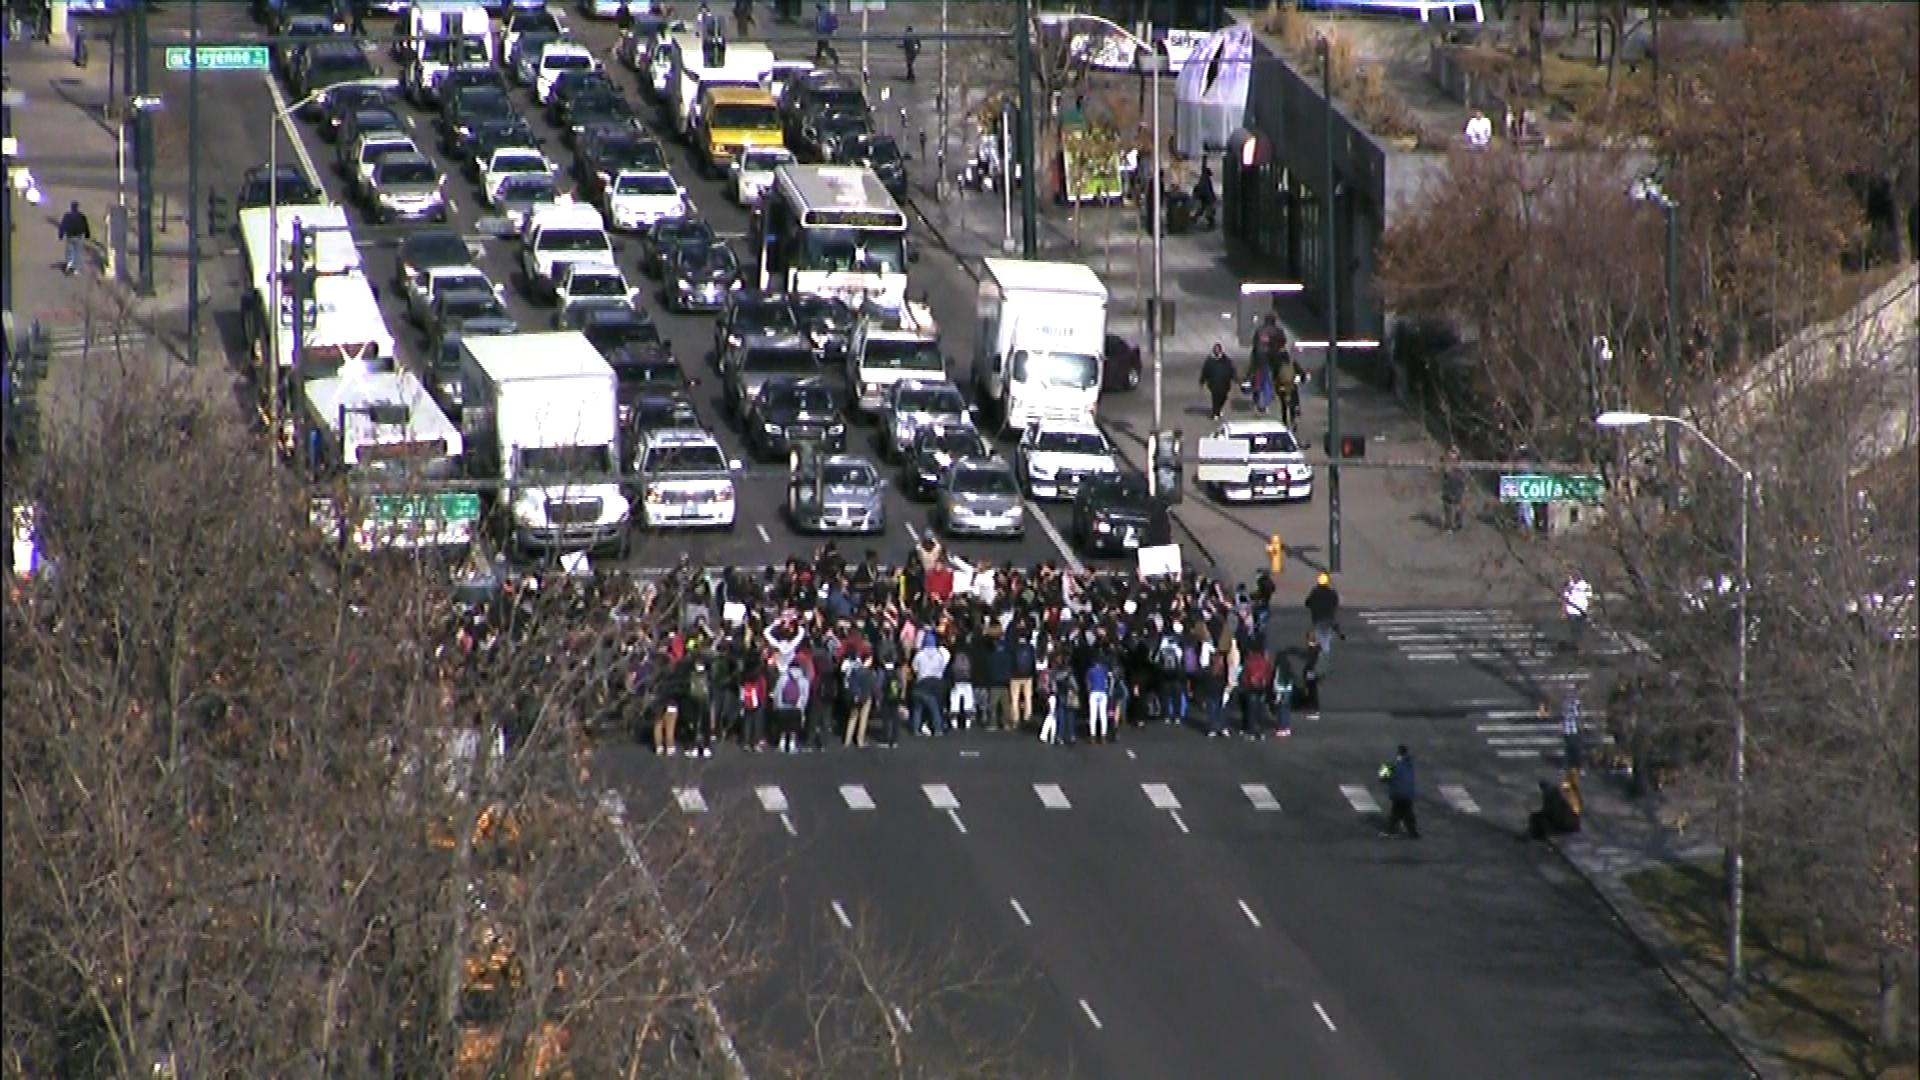 Student blocking the intersection of Lincoln Street and Colfax Avenue (credit: CBS)